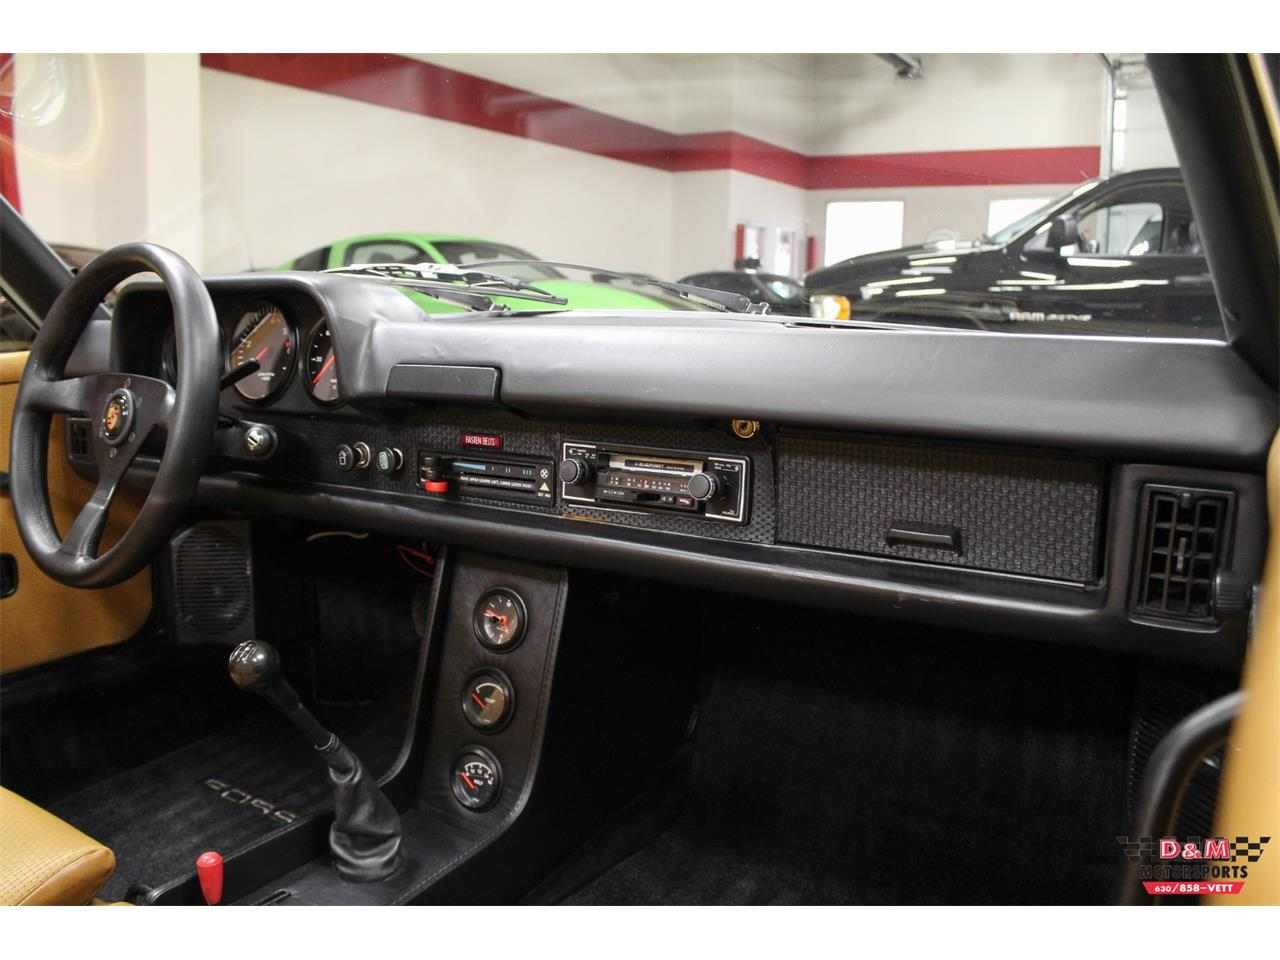 Large Picture of 1976 Porsche 914 located in Illinois Offered by D & M Motorsports - P8QY